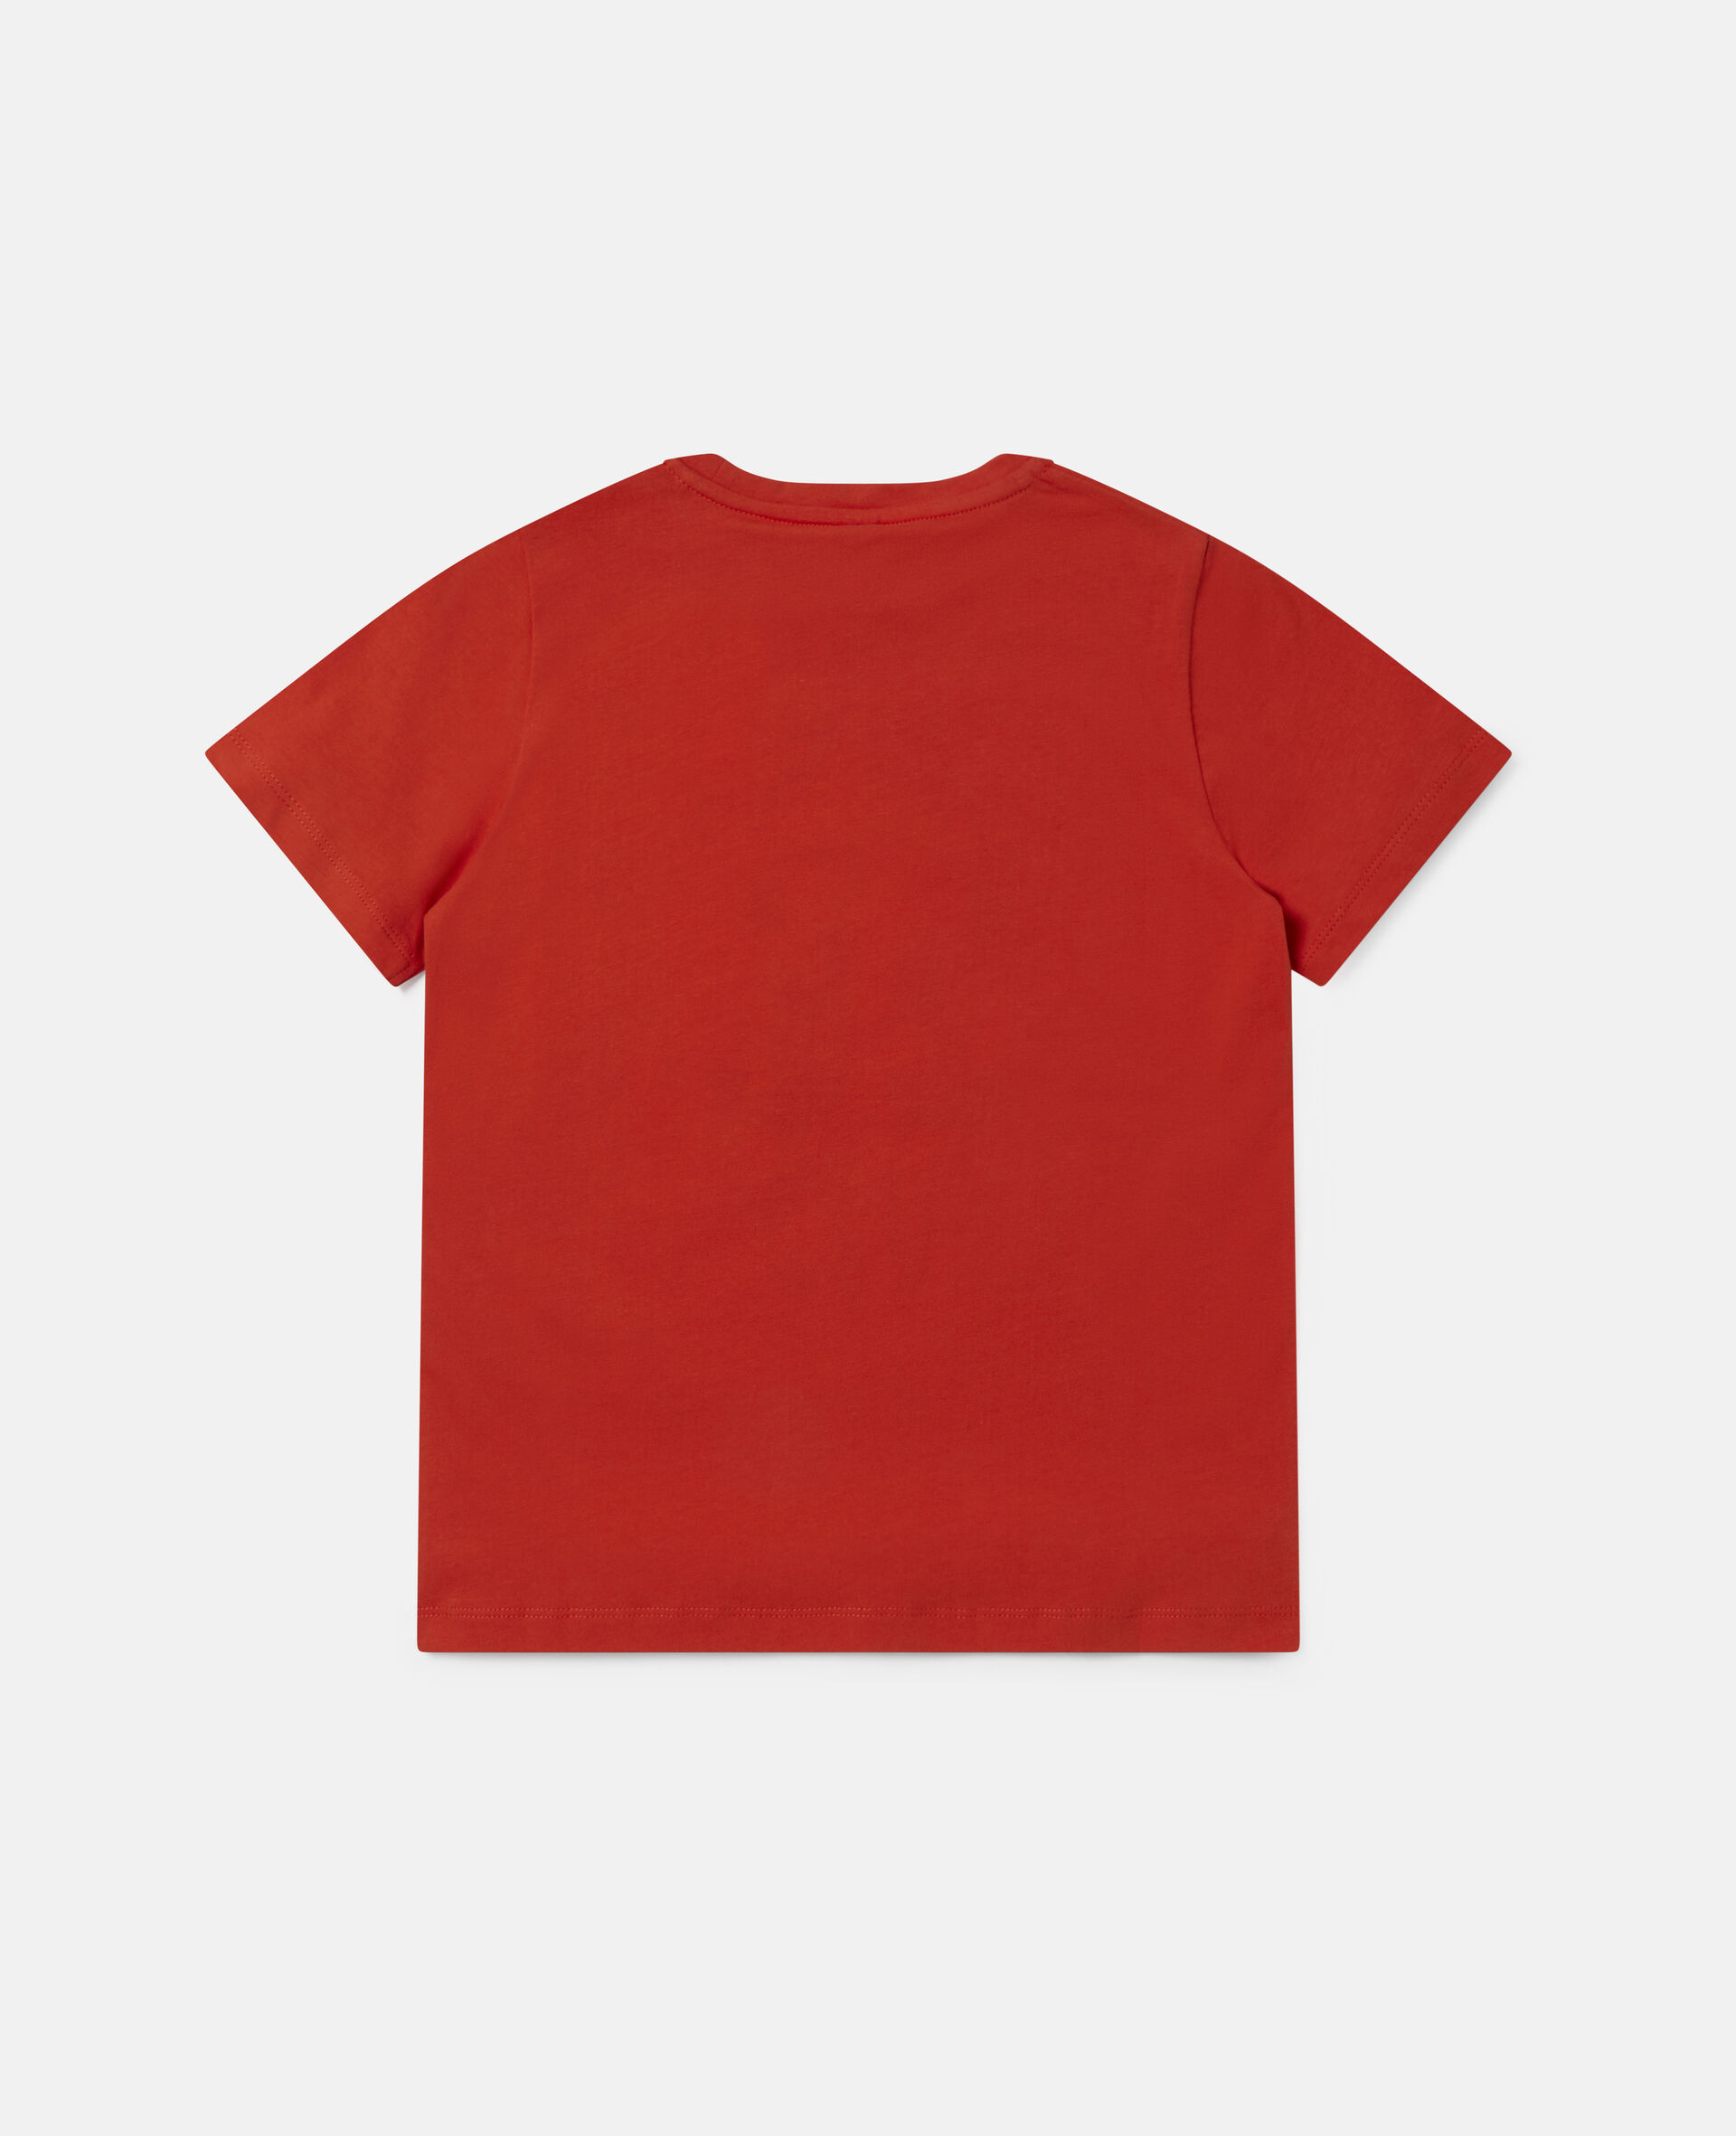 Best Buds Cotton T-shirt-Red-large image number 3